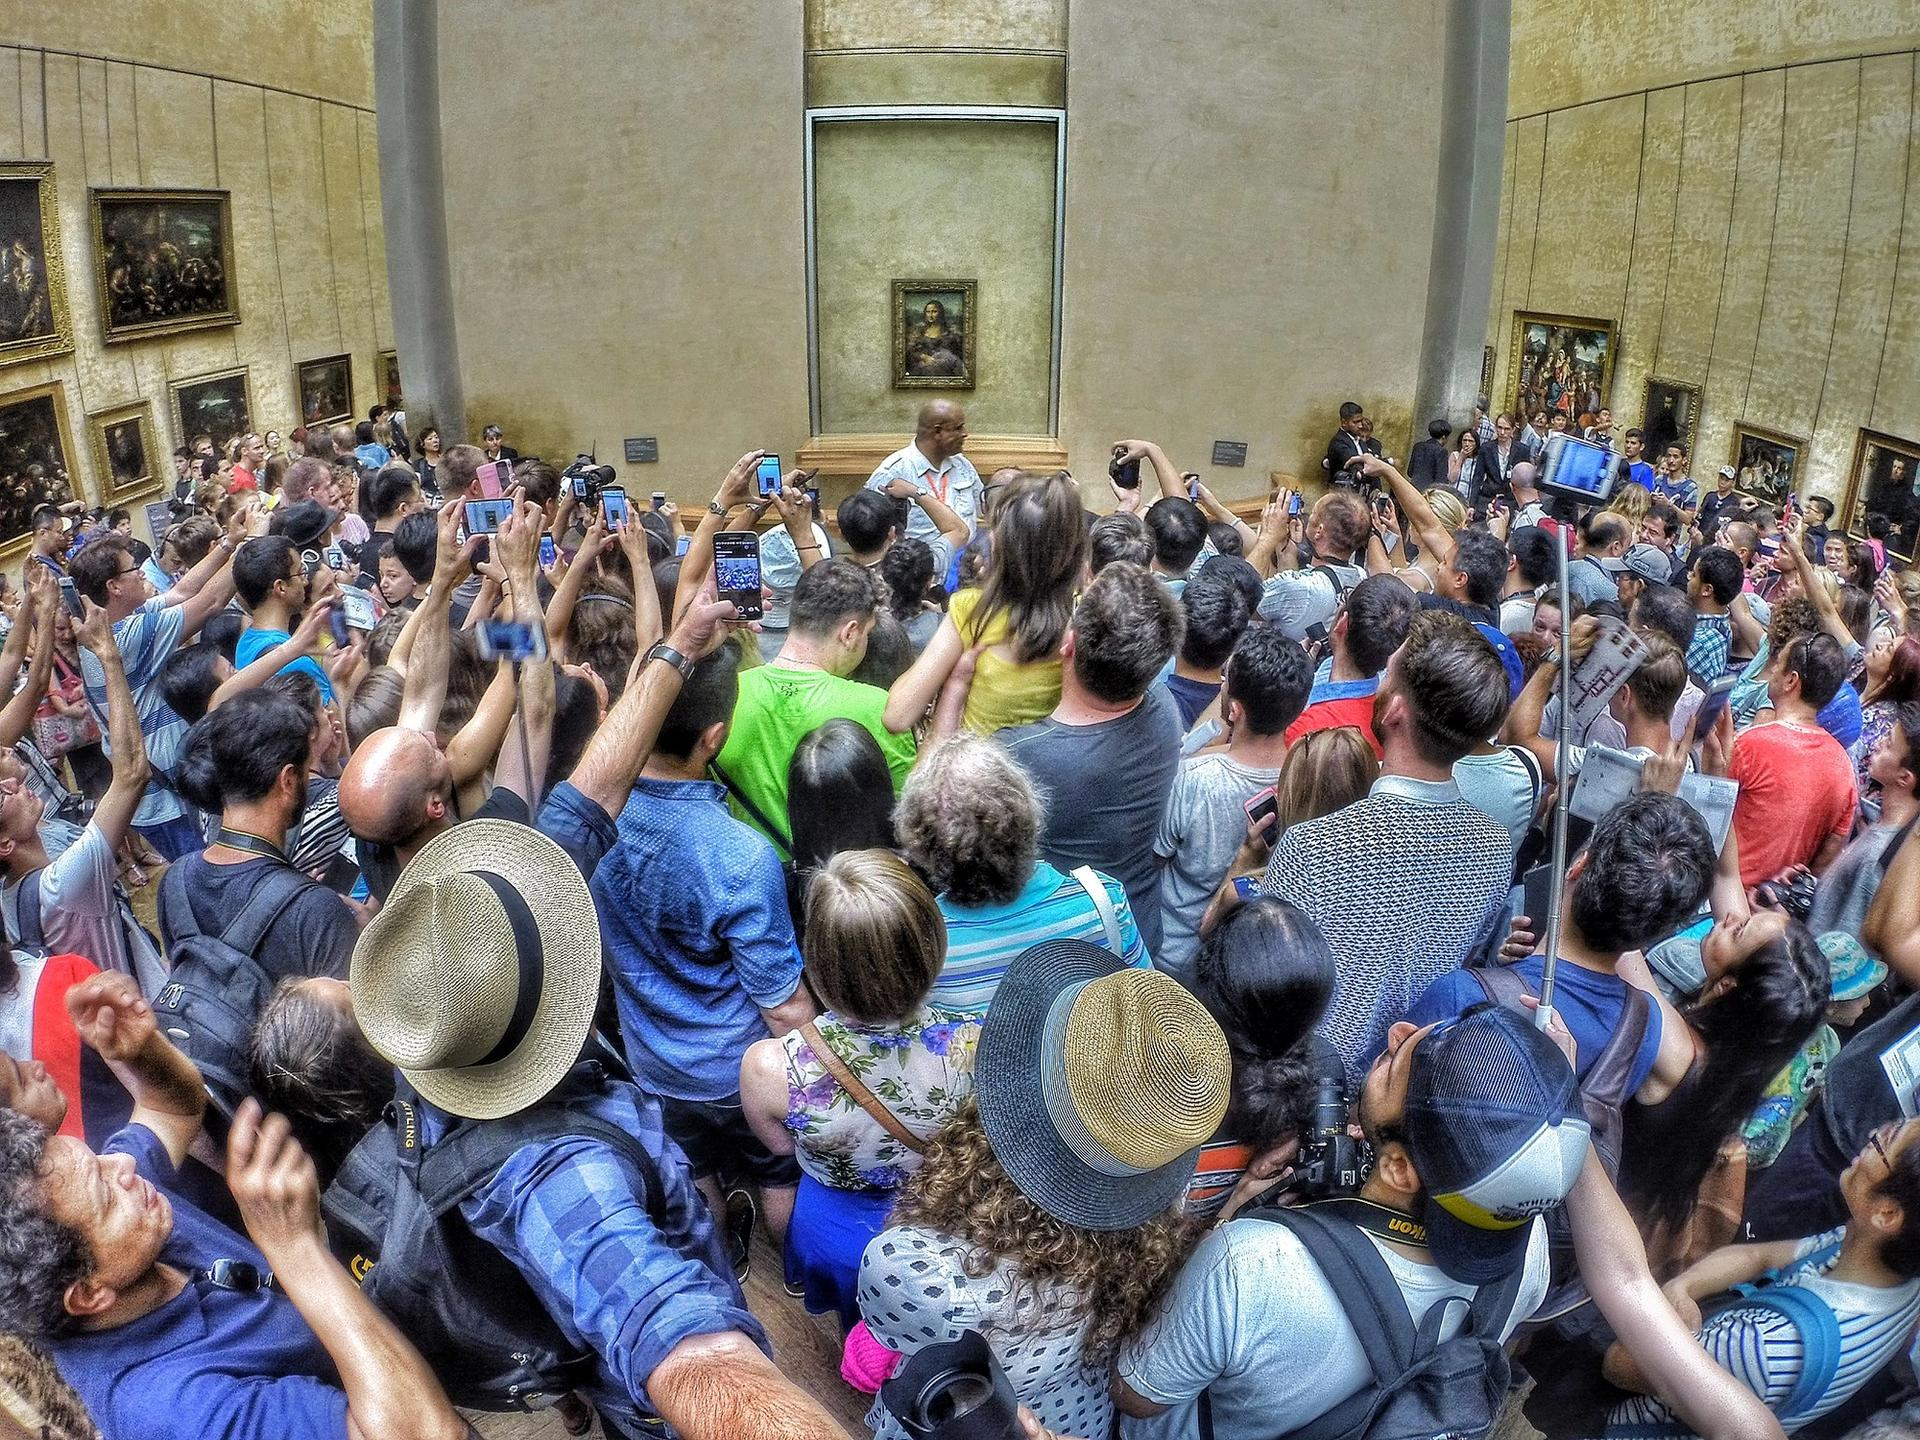 The Louvre reached more than 10 million visitors last year, which equates to 25,000 to 50,000 people a day Photo: Max Fercondini